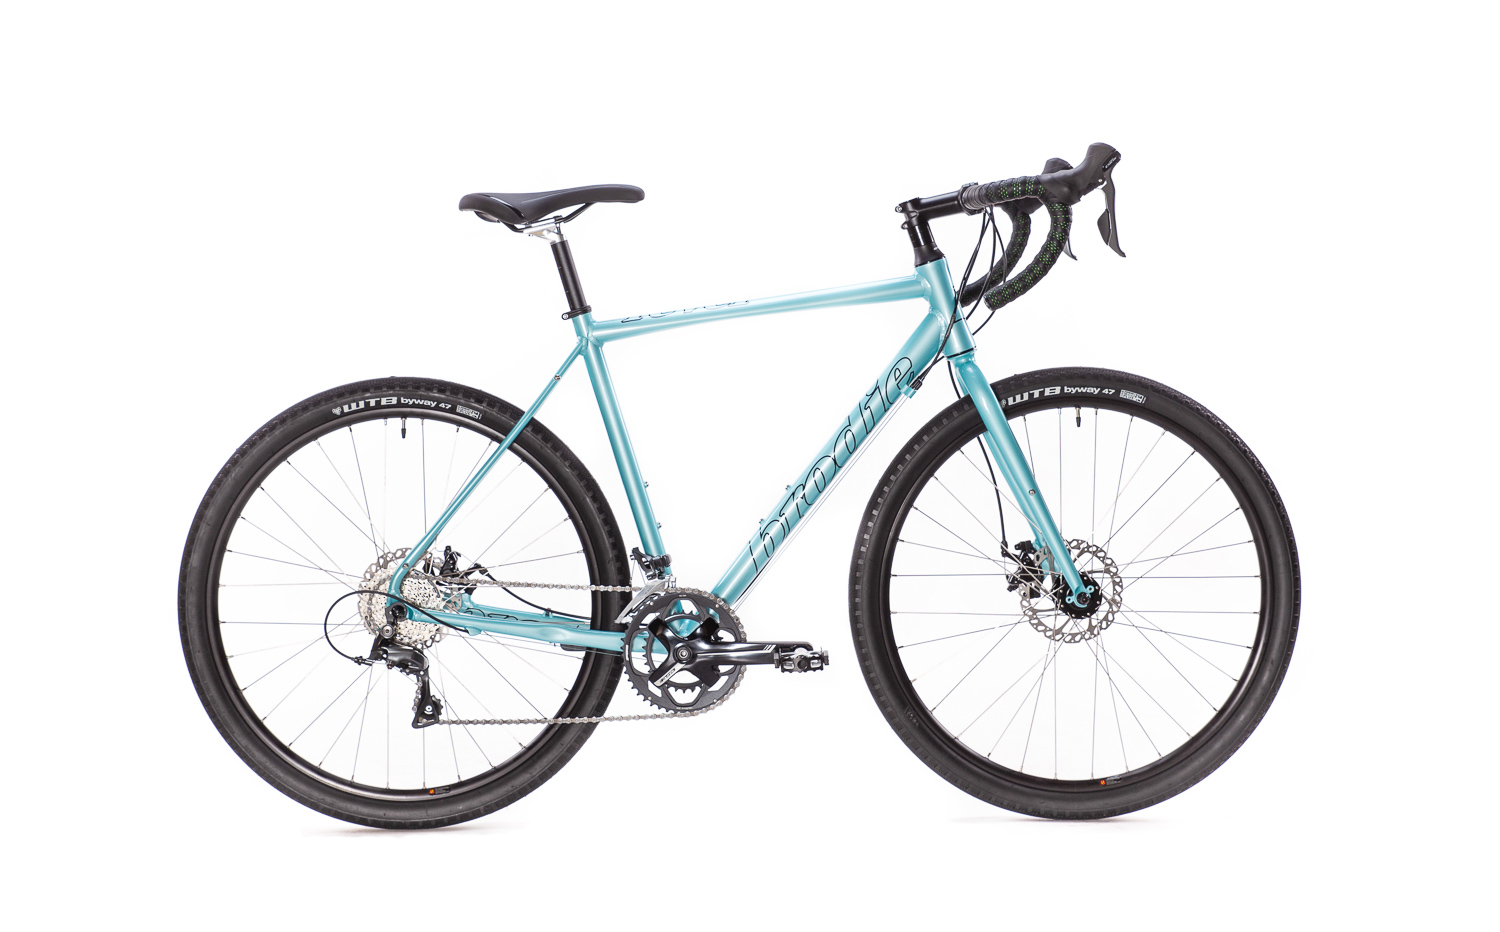 Have a look at the Revel in our Road Plus Adventure Series - $1099